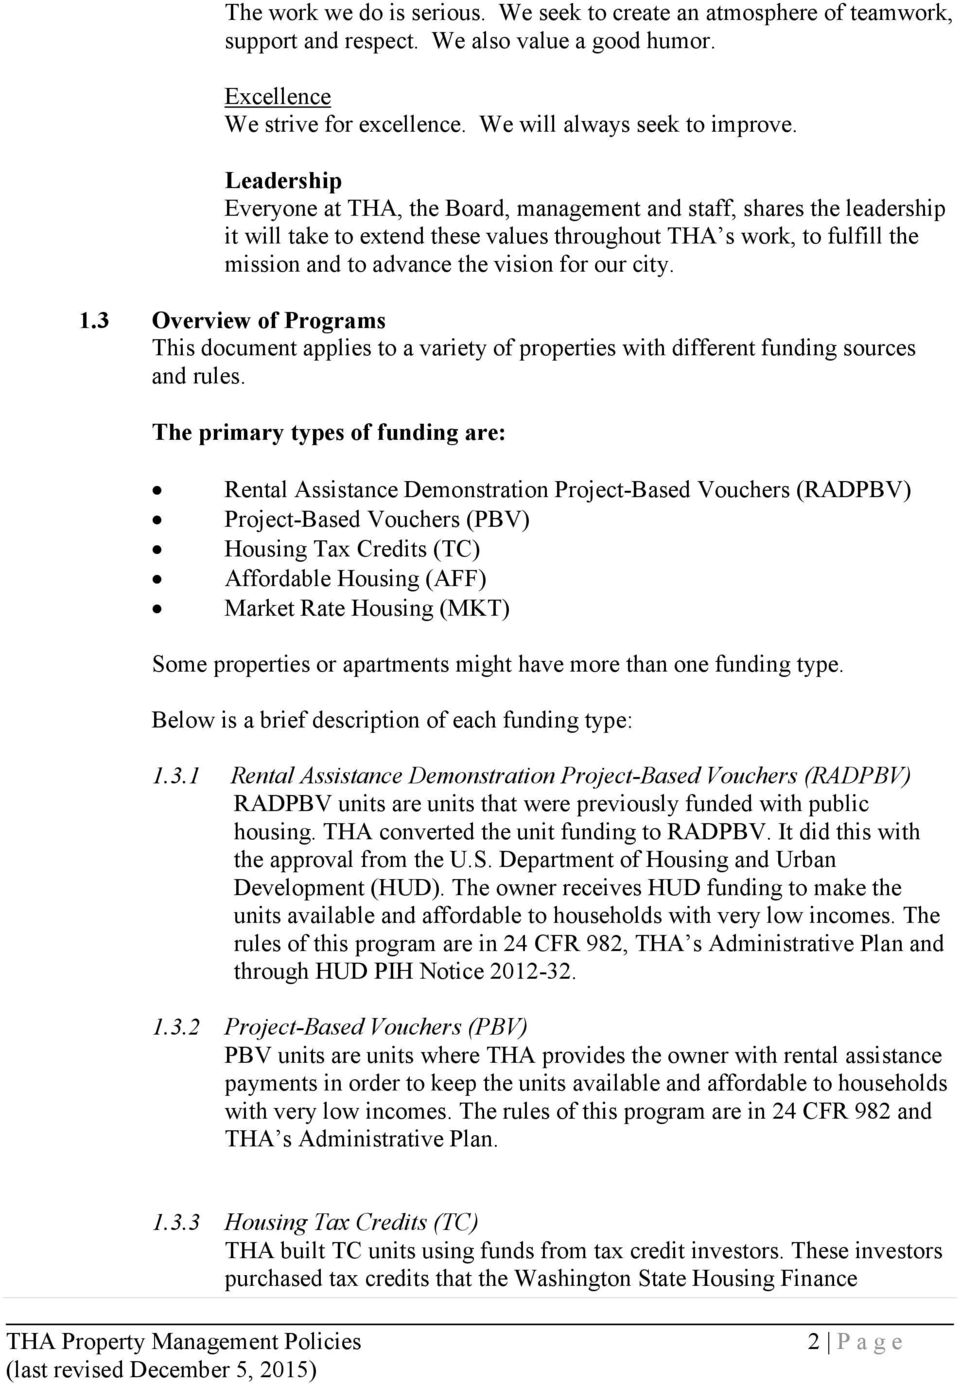 city. 1.3 Overview of Programs This document applies to a variety of properties with different funding sources and rules.